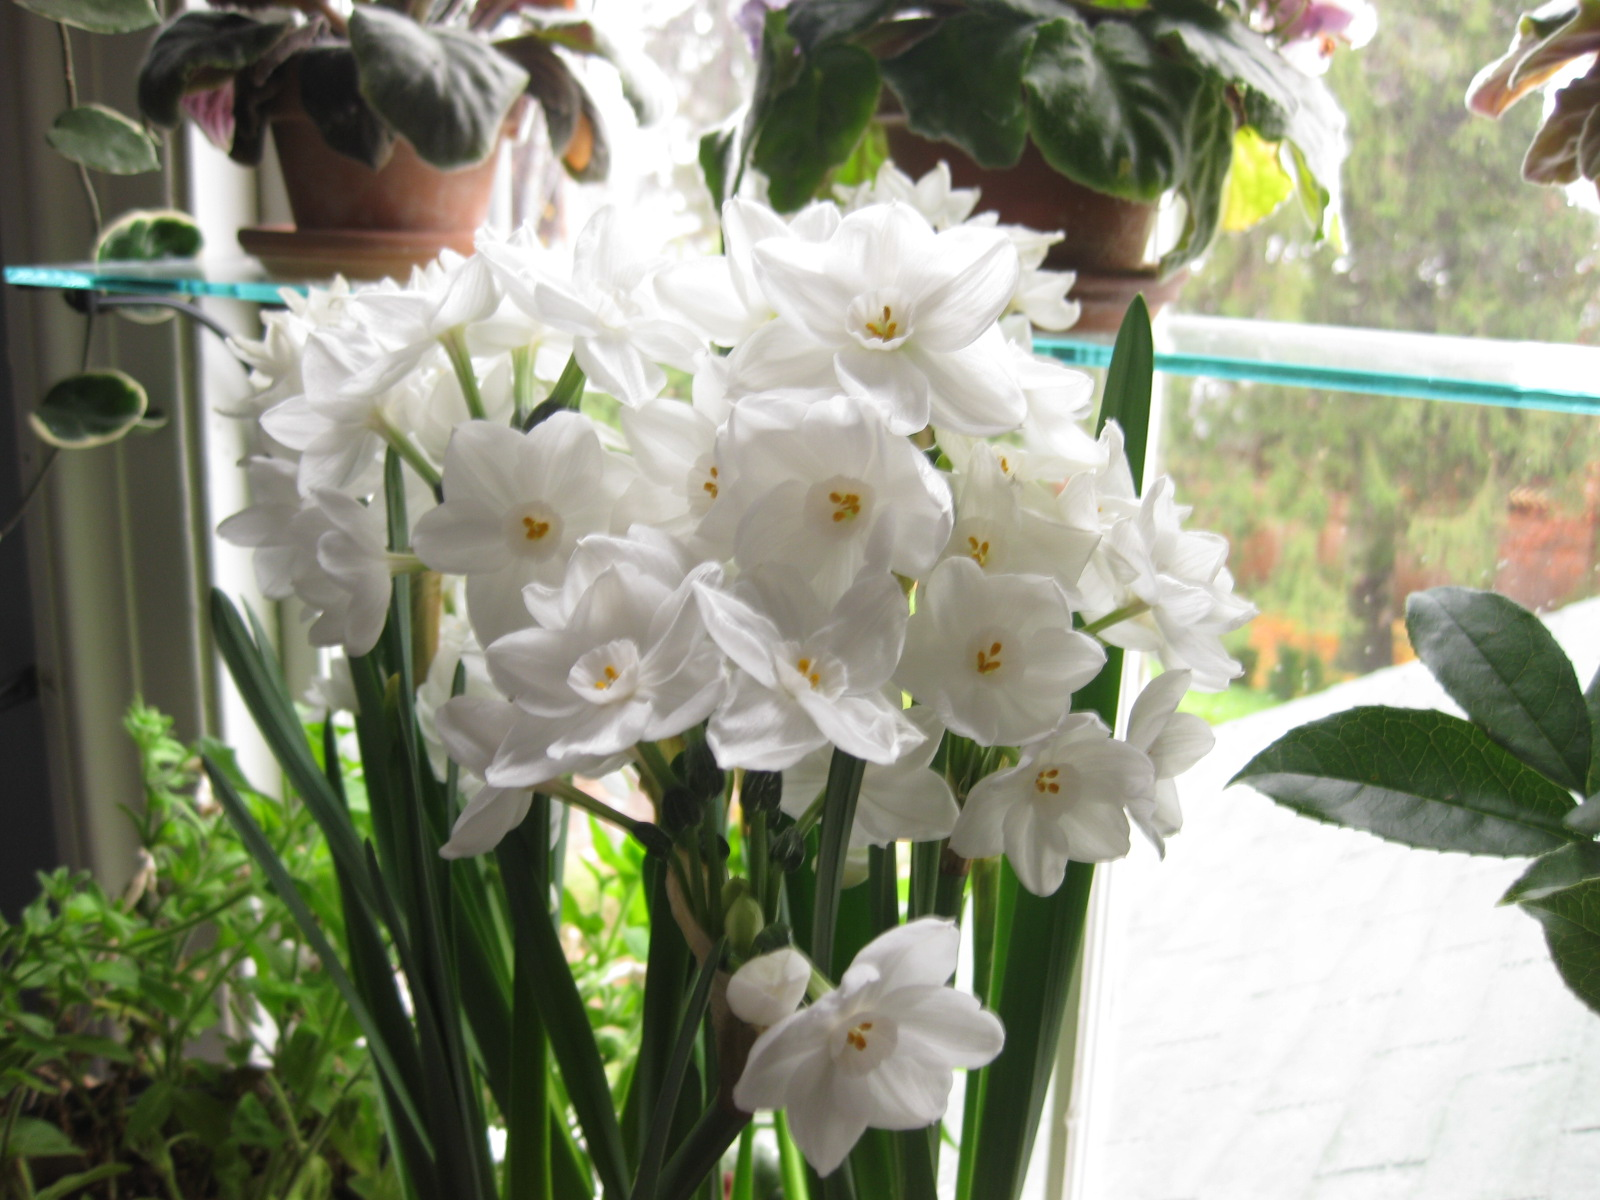 Pickled Paperwhites (Narcissus grandiflora)